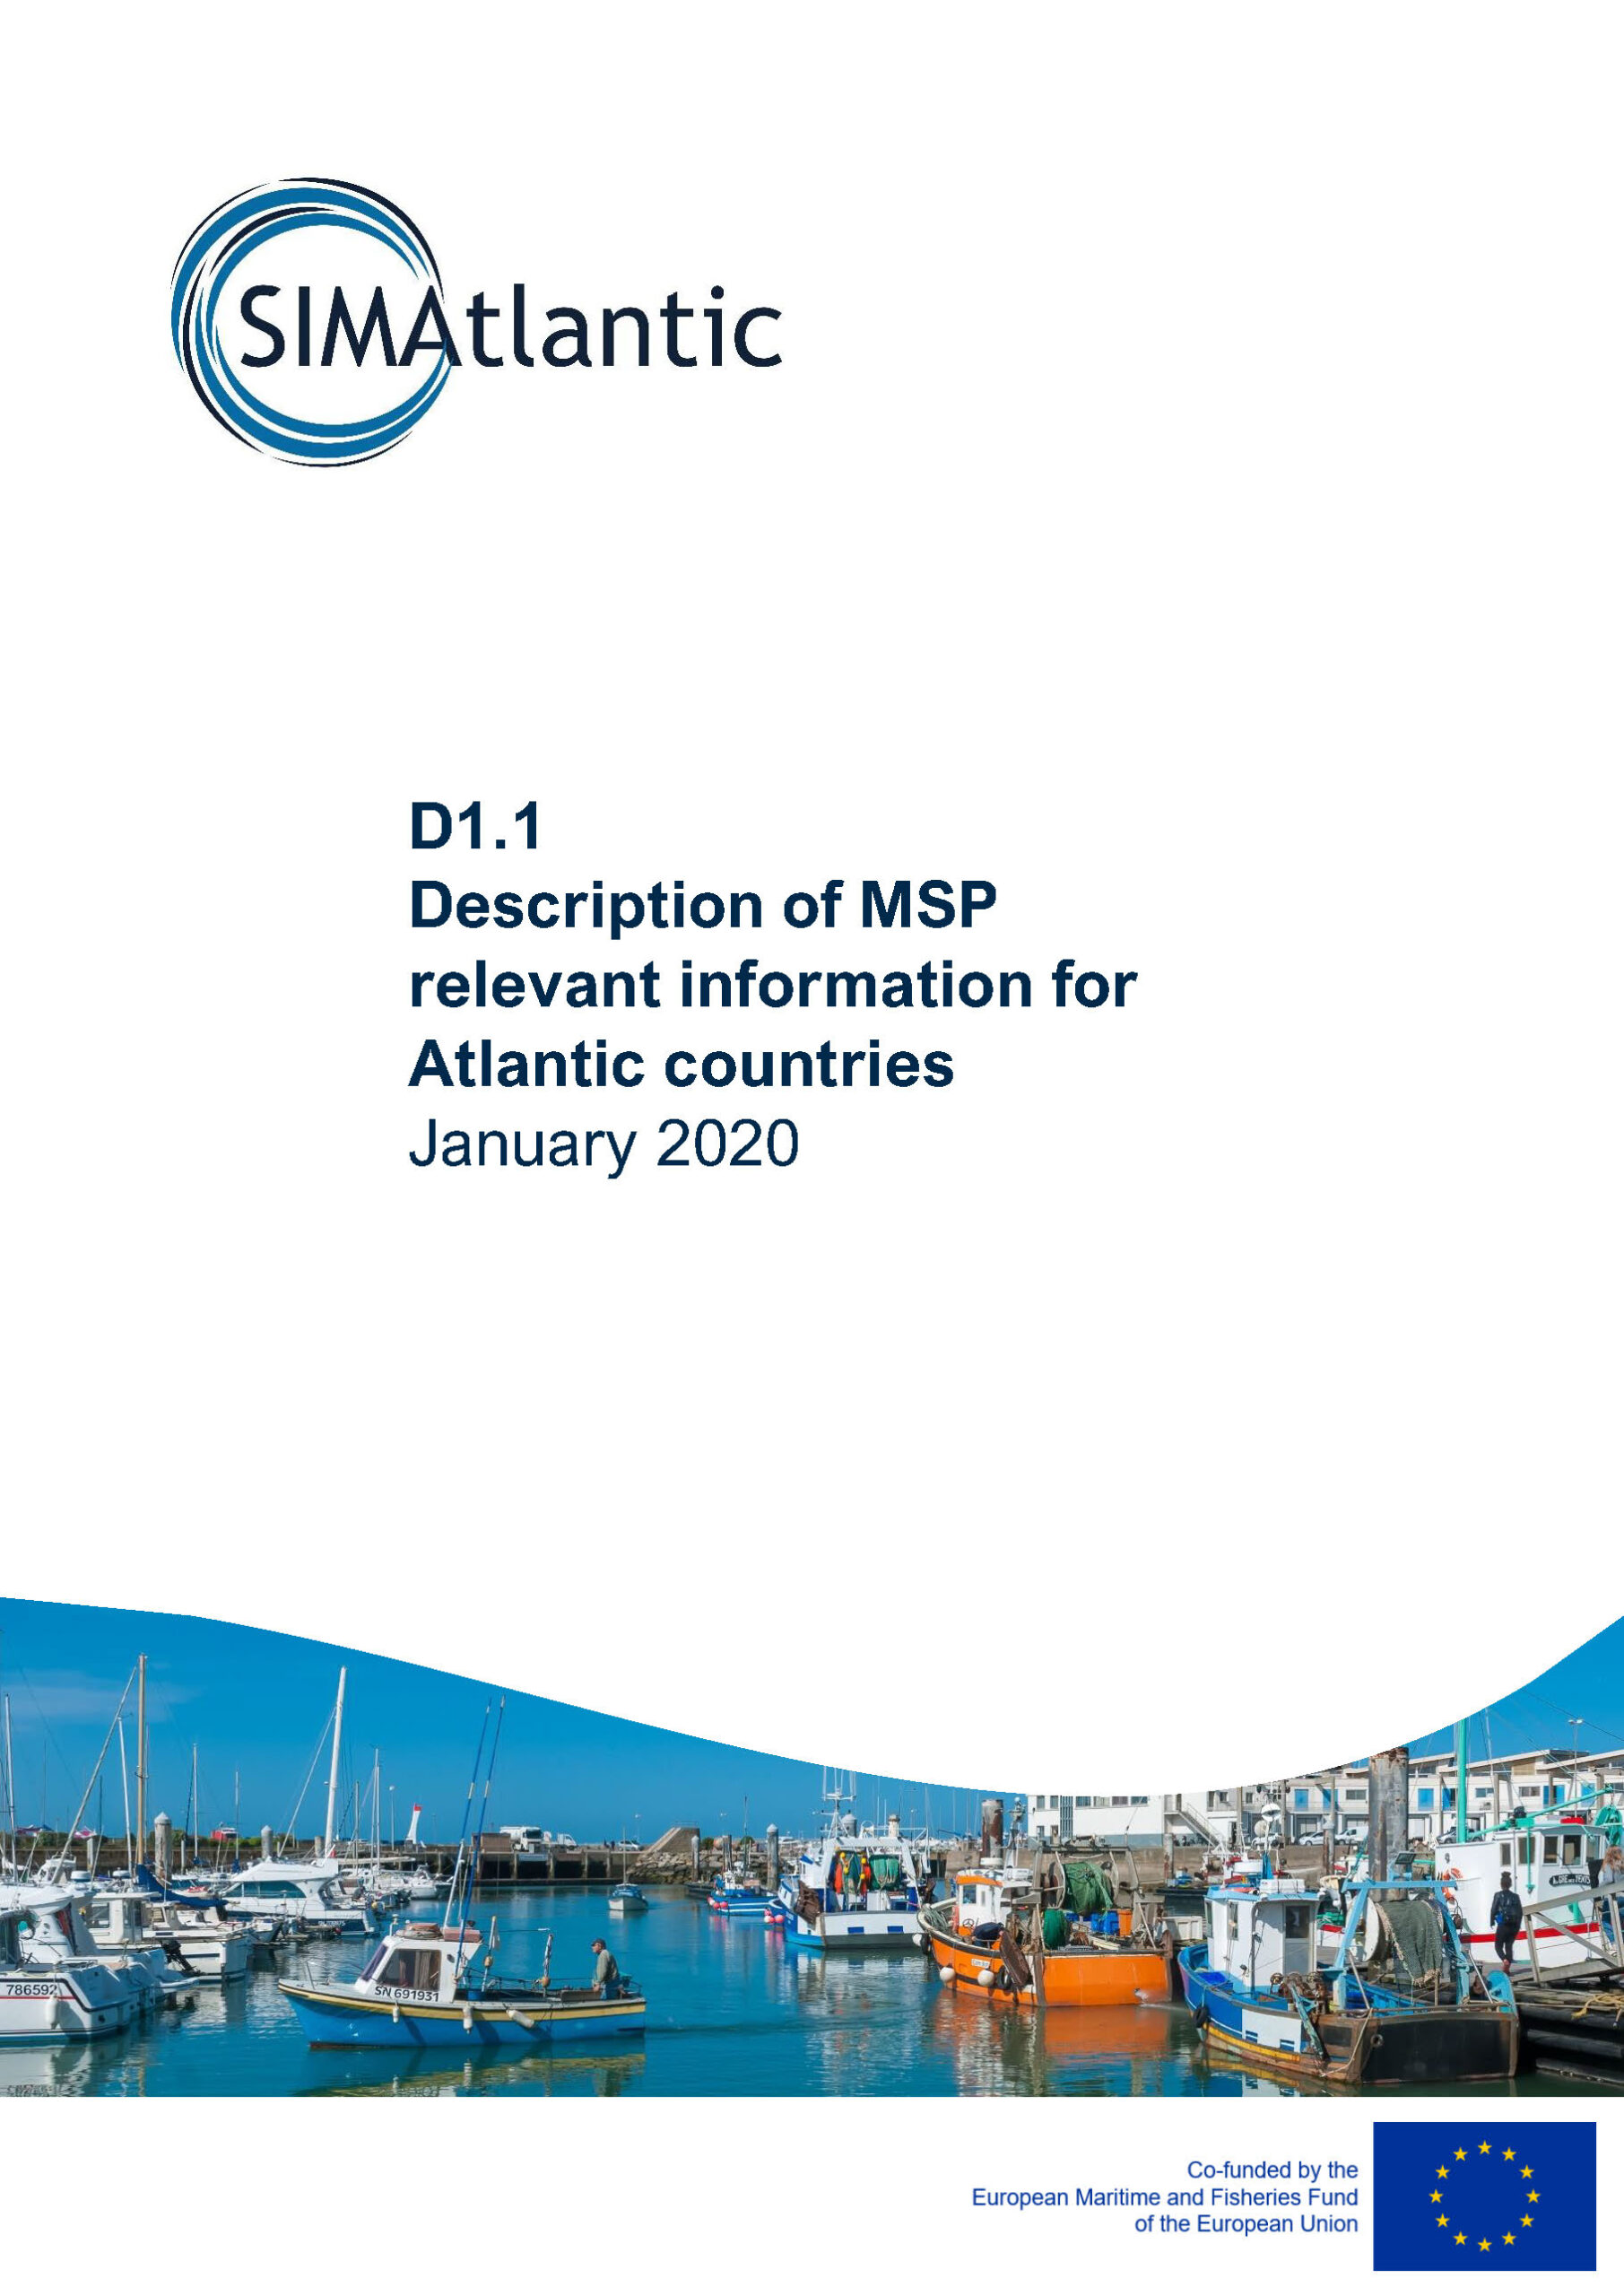 D1.1 Description of MSP relevant information for Atlantic countries